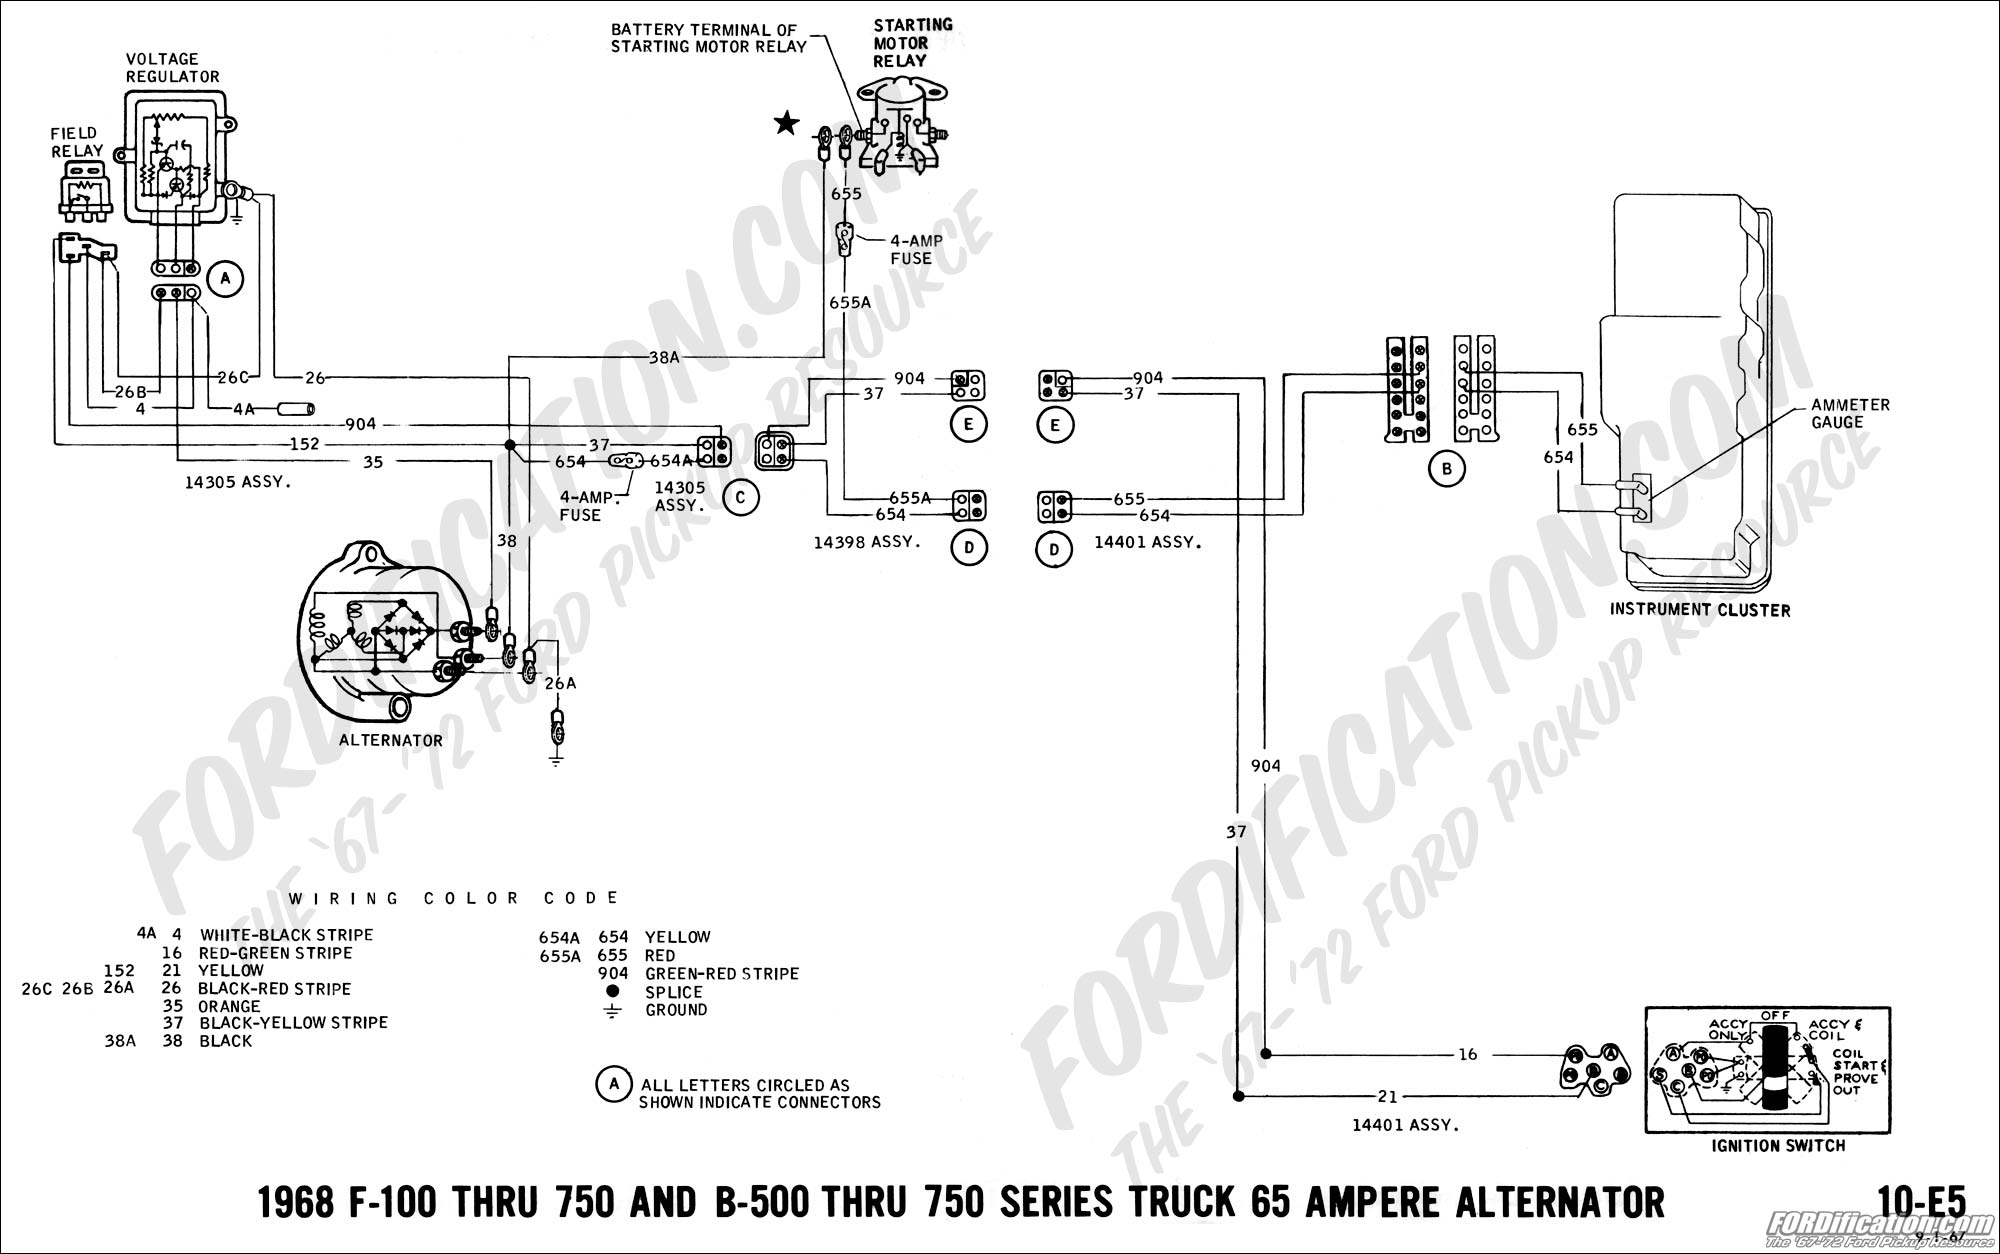 78 Gm Wiper Switch Wiring Diagram Starting Know About 1986 Firebird Schematic Ford Truck Technical Drawings And Schematics Section H